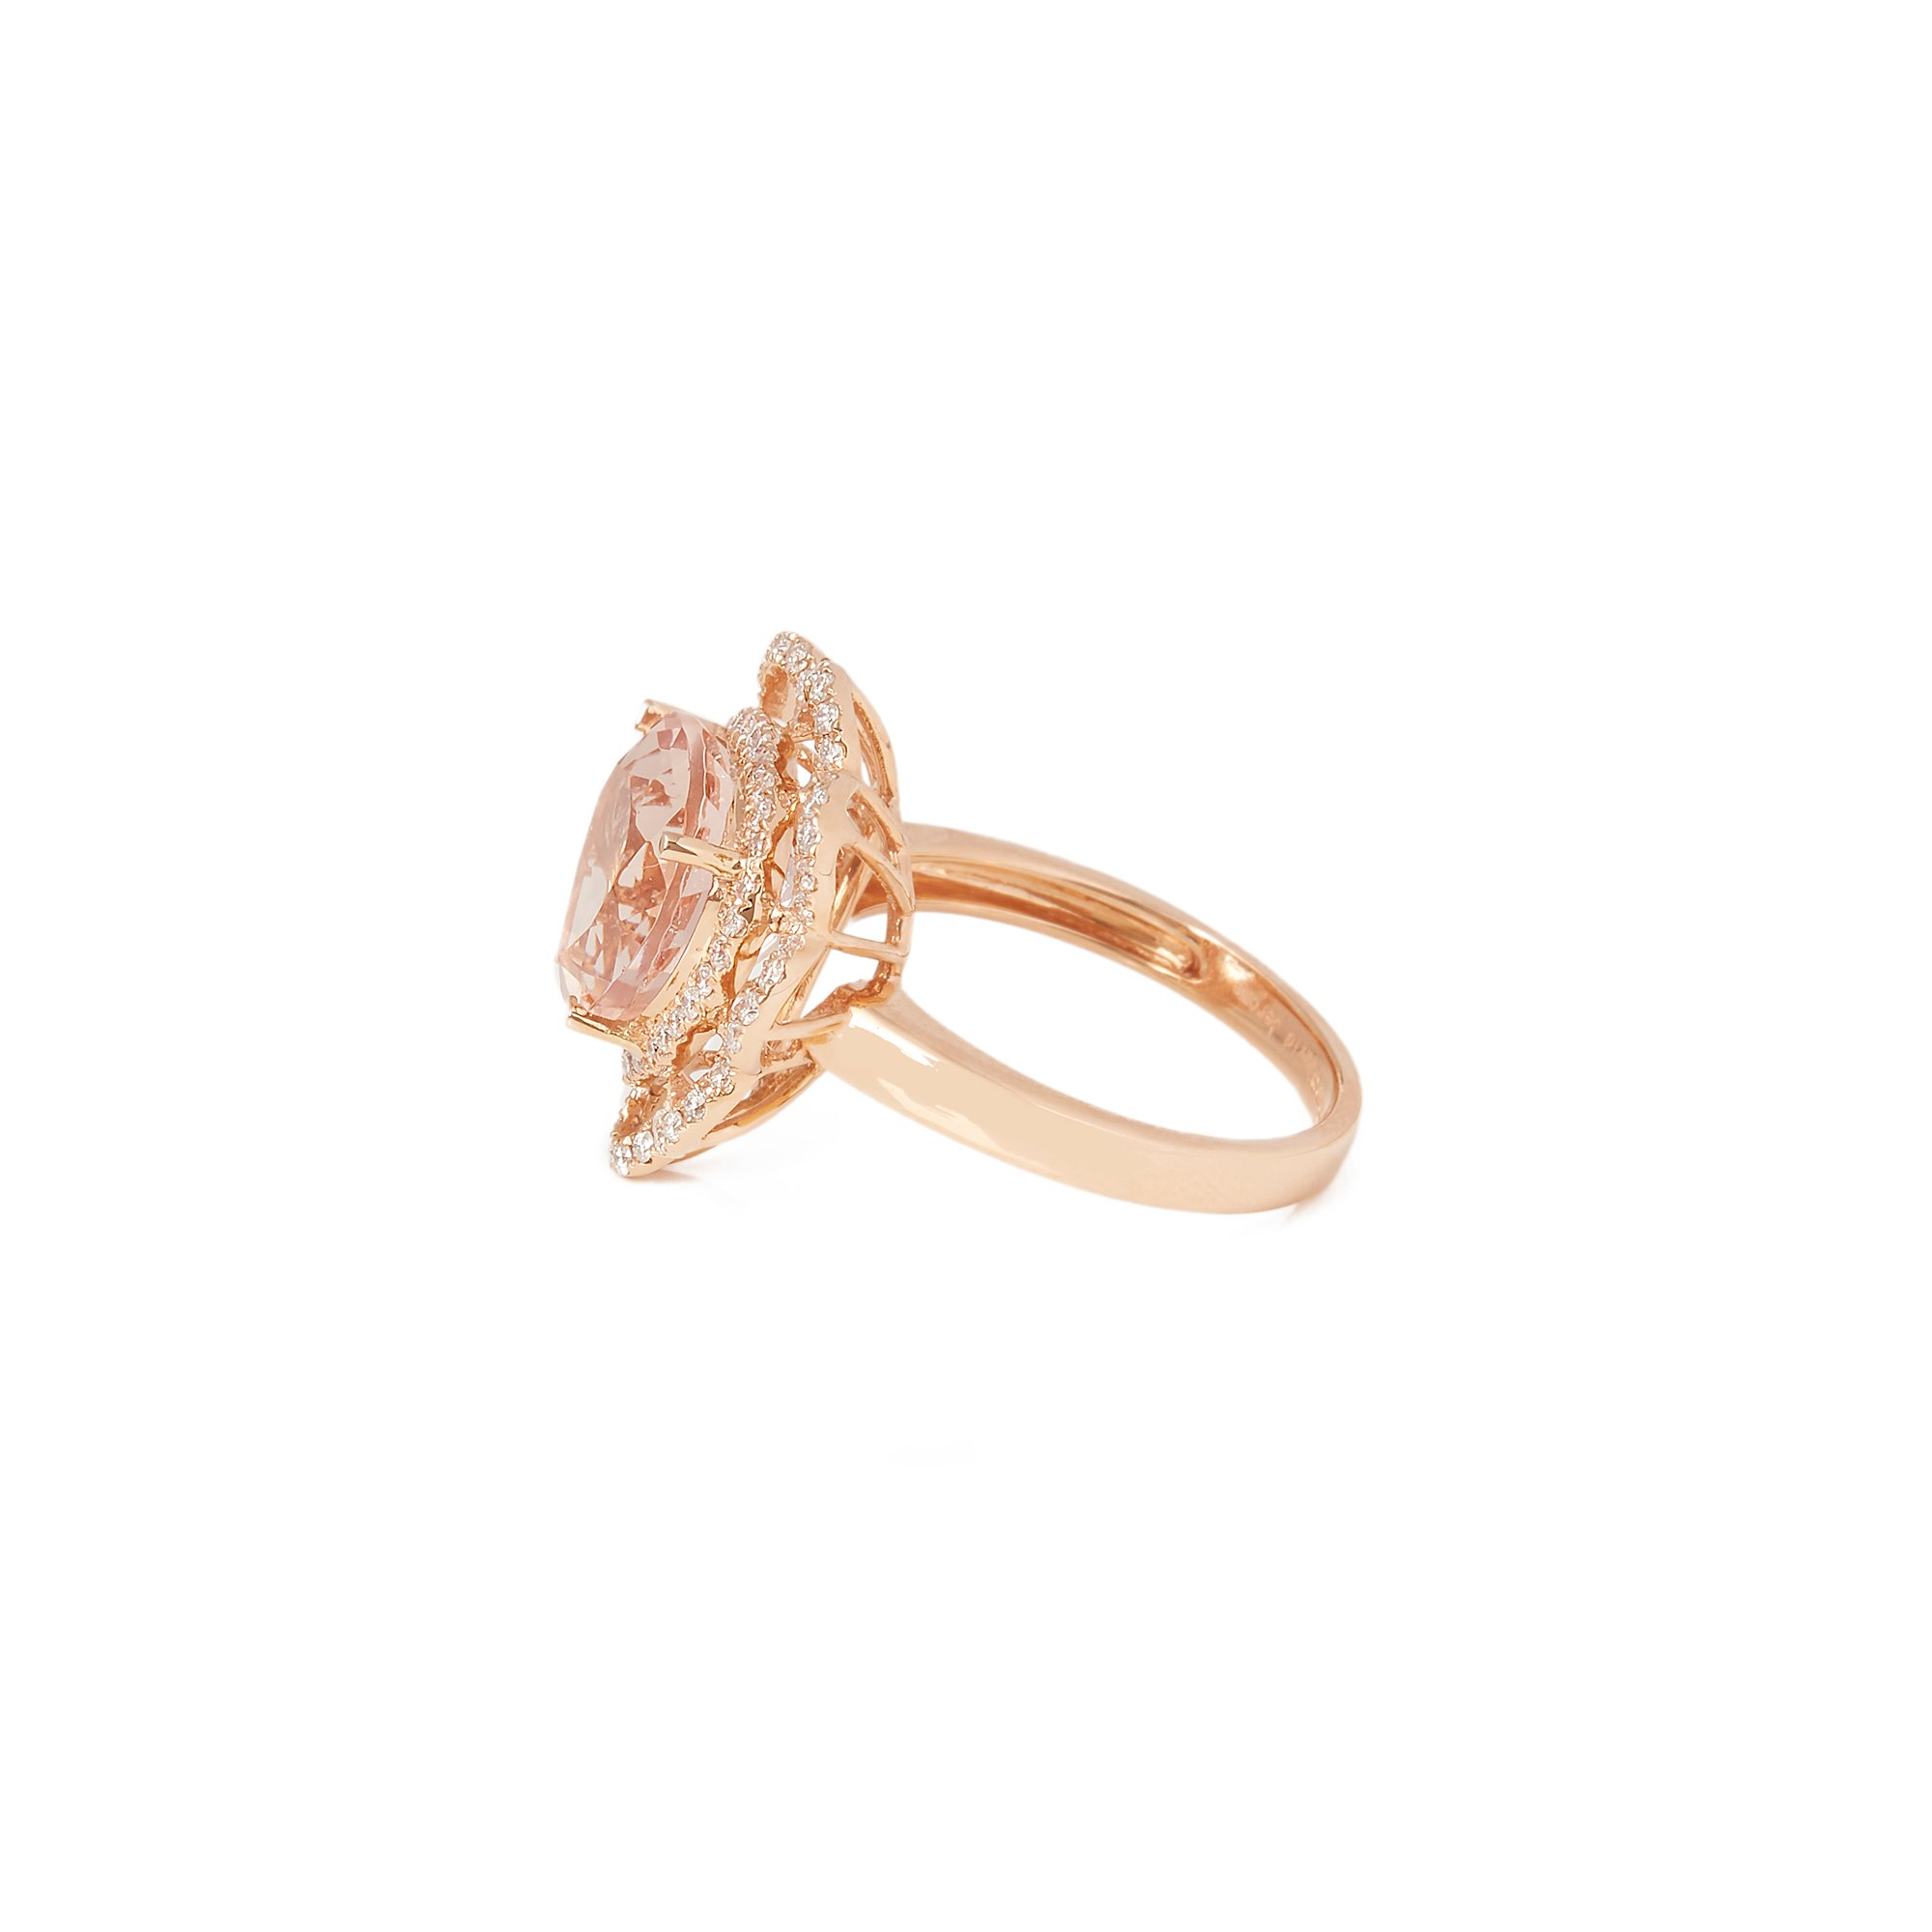 David Jerome 18k Rose Gold Morganite and Diamond Ring